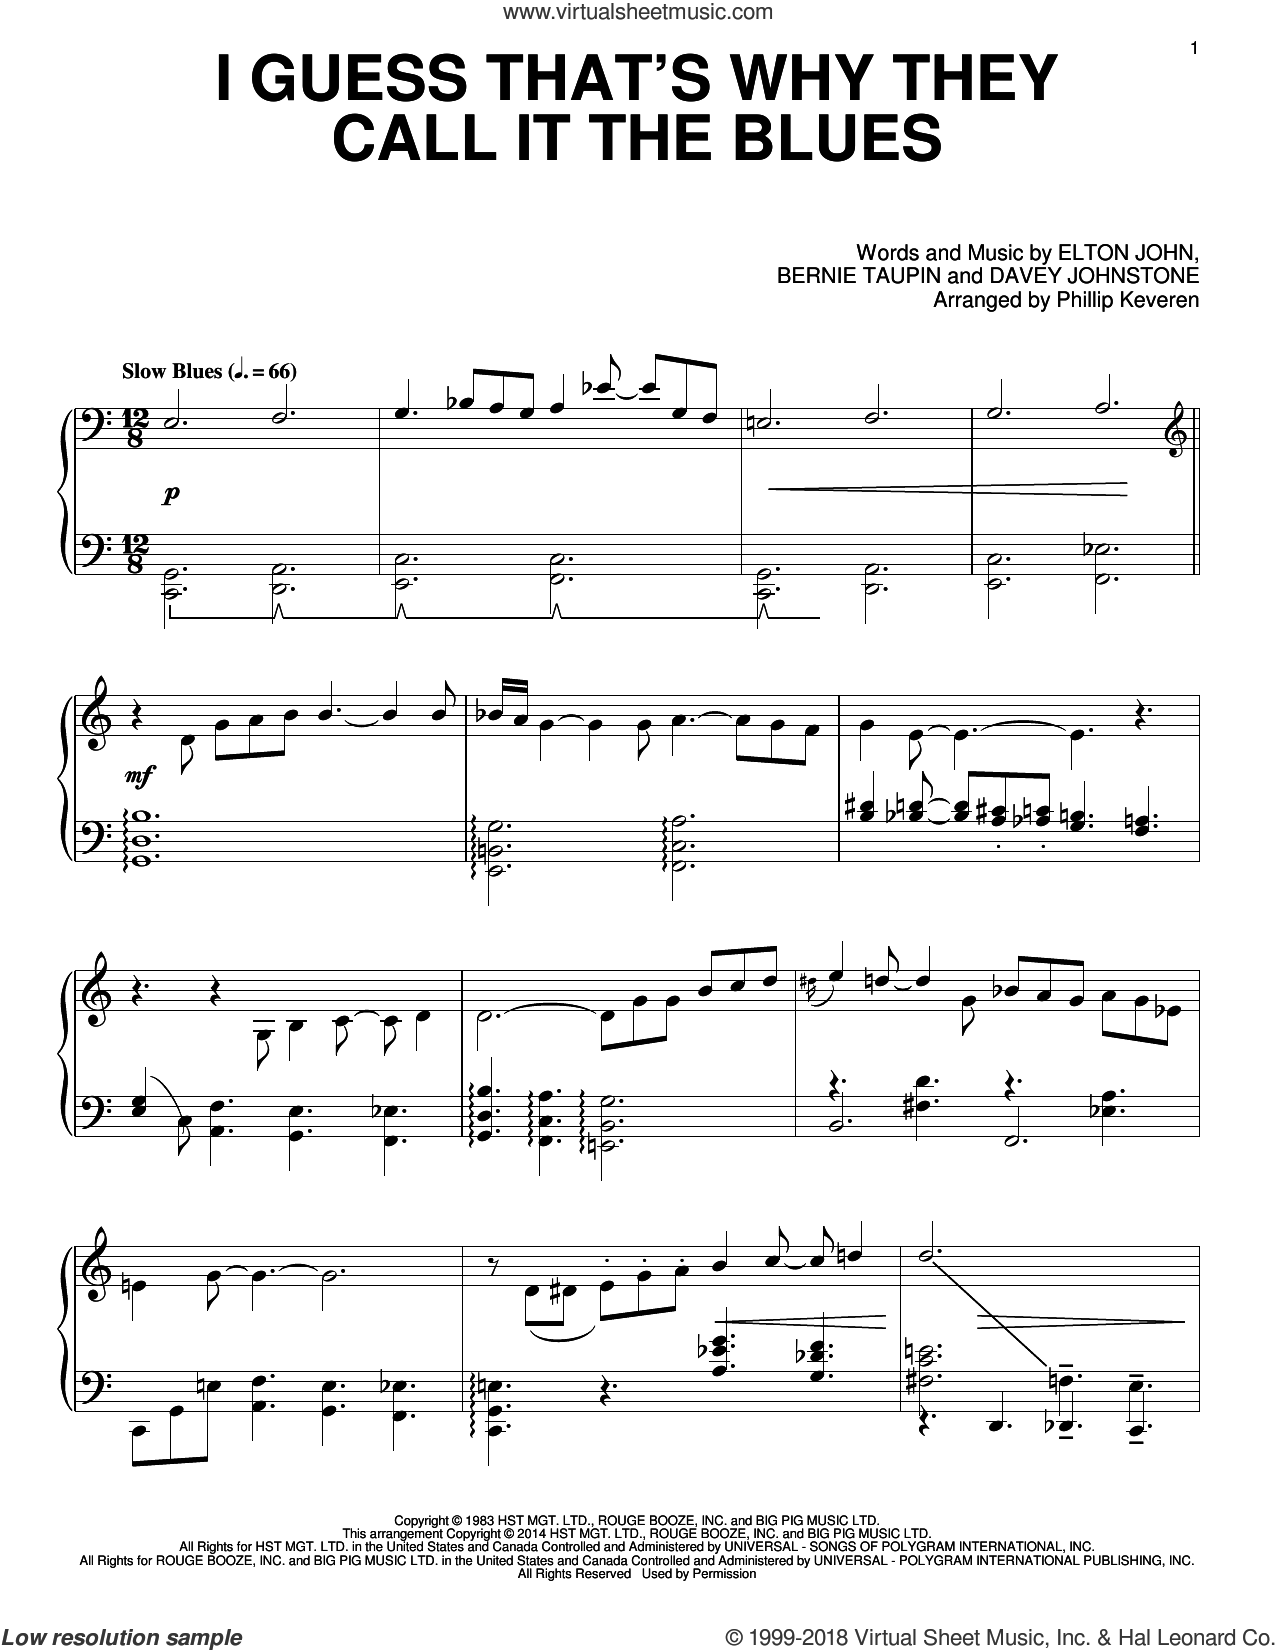 I Guess That's Why They Call It The Blues sheet music for piano solo by Davey Johnstone, Bernie Taupin, Elton John and Phillip Keveren. Score Image Preview.